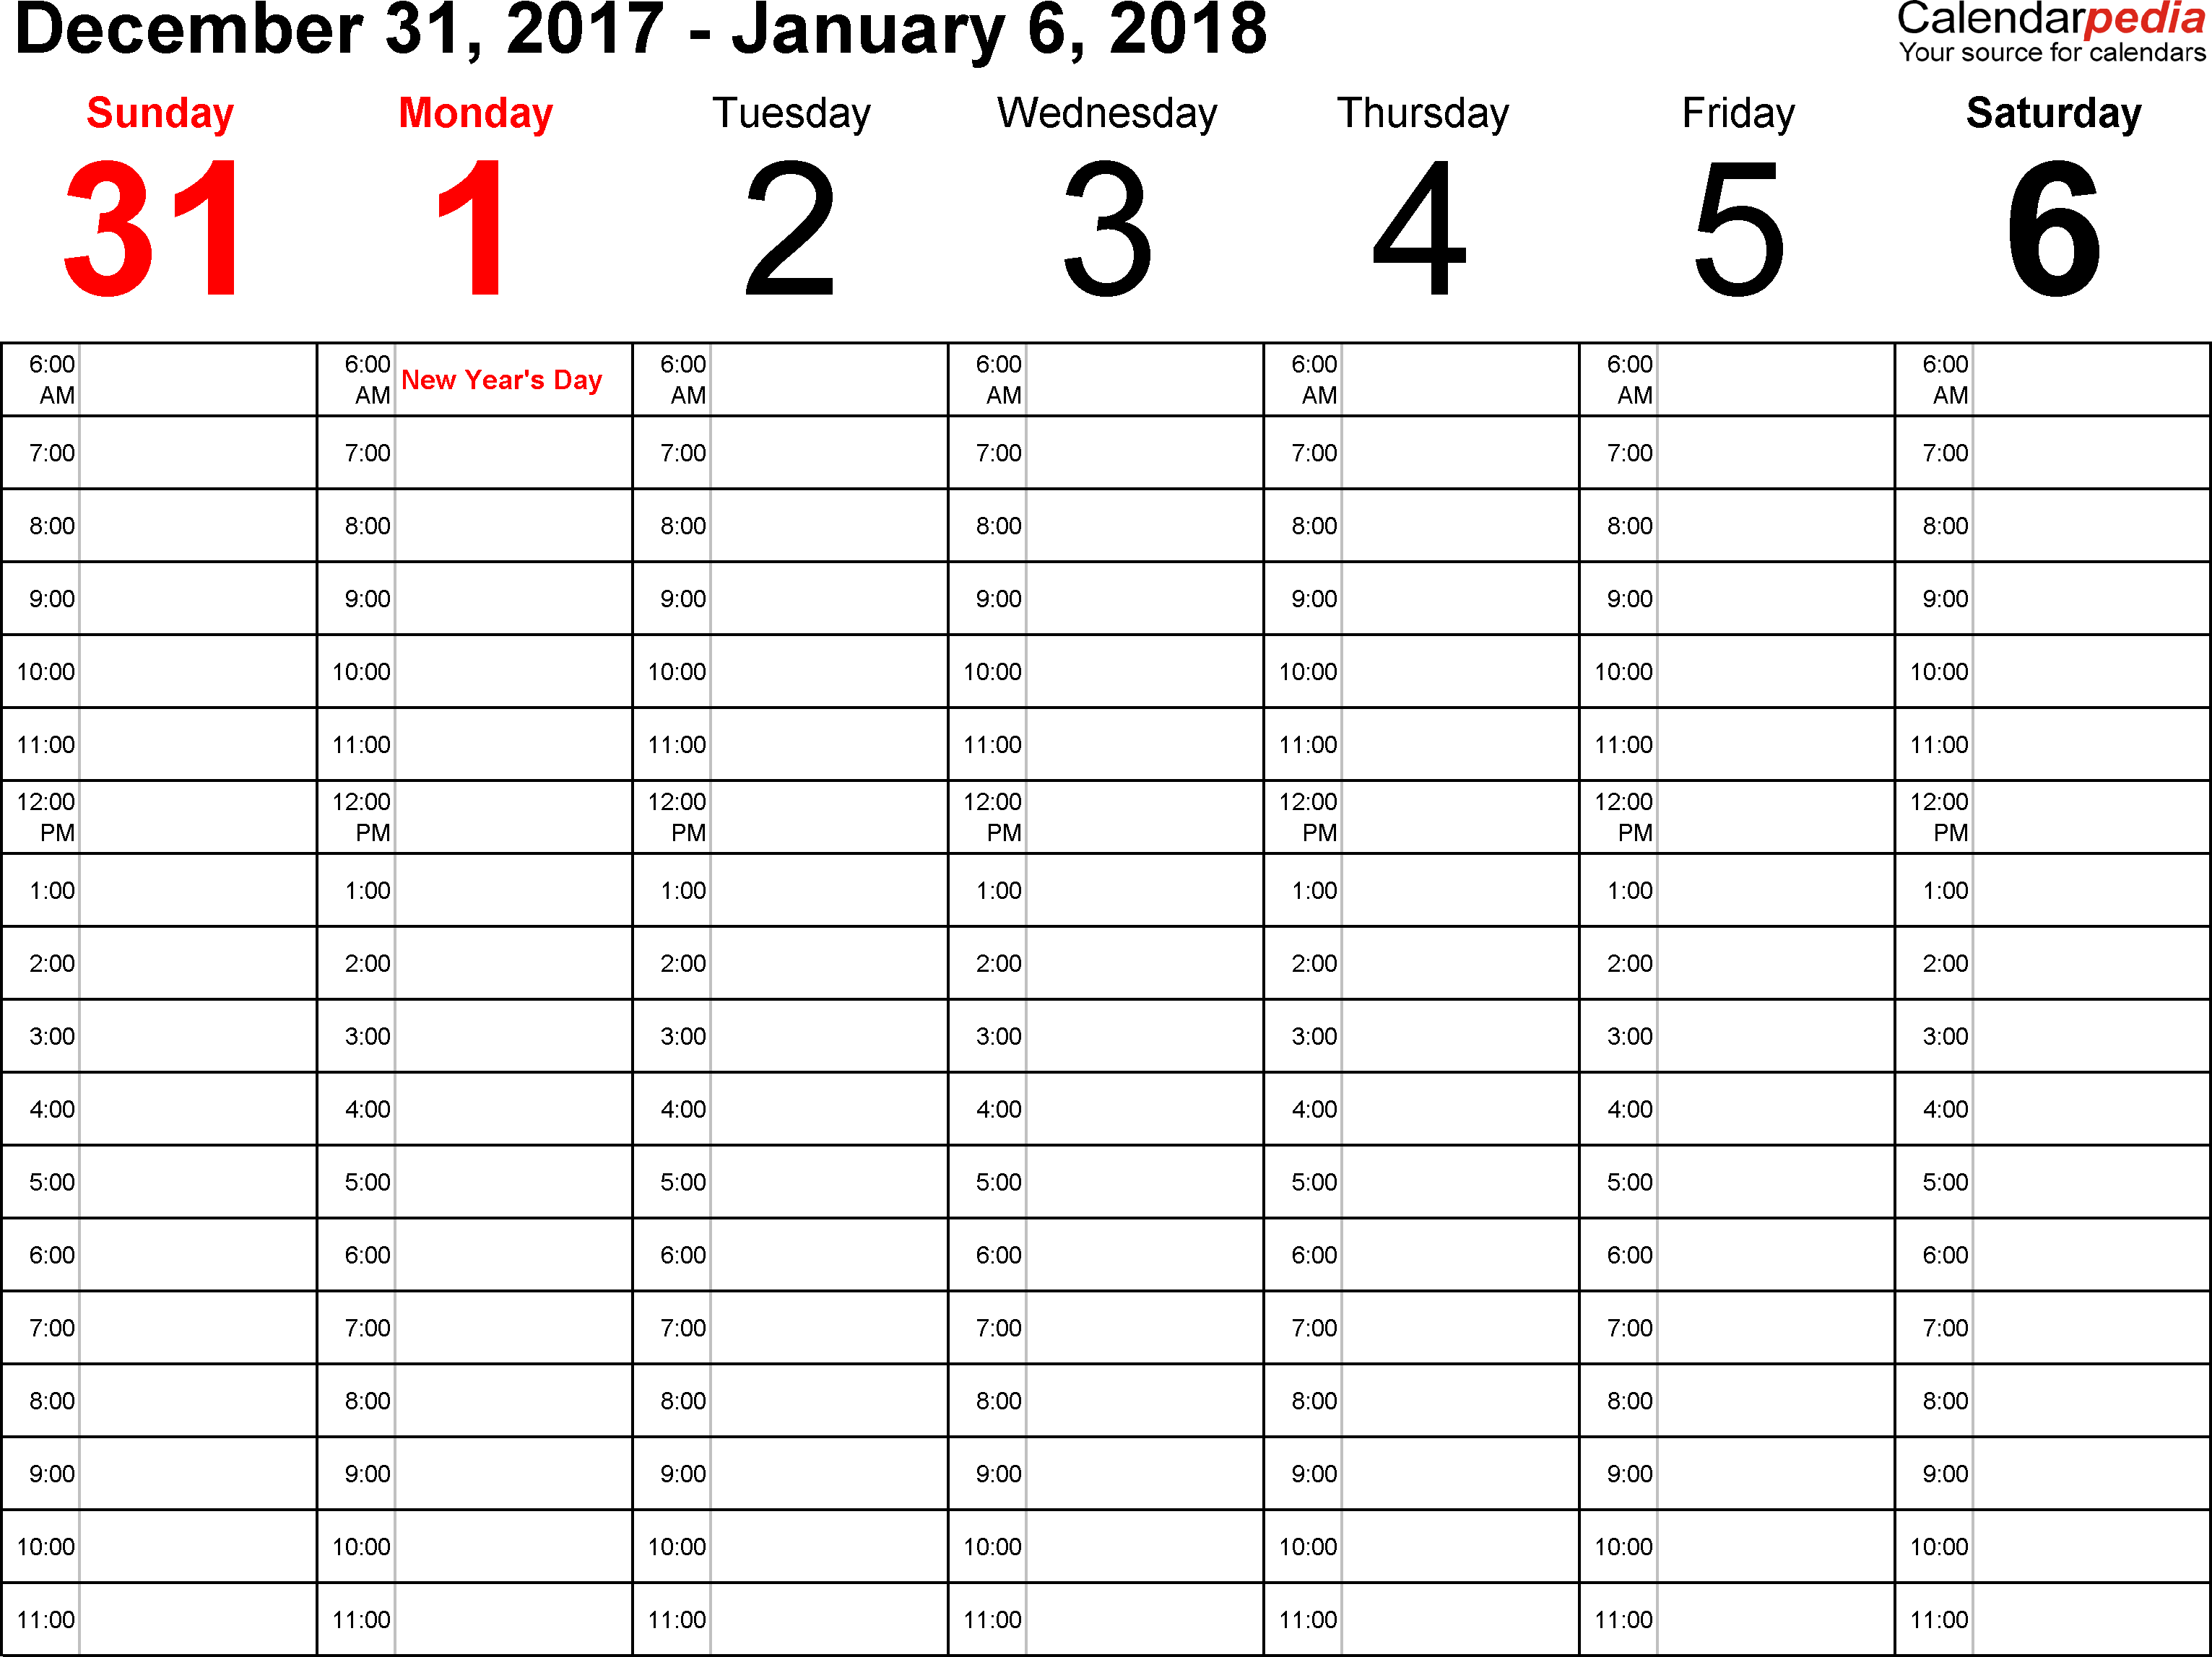 weekly calendar 2018 for